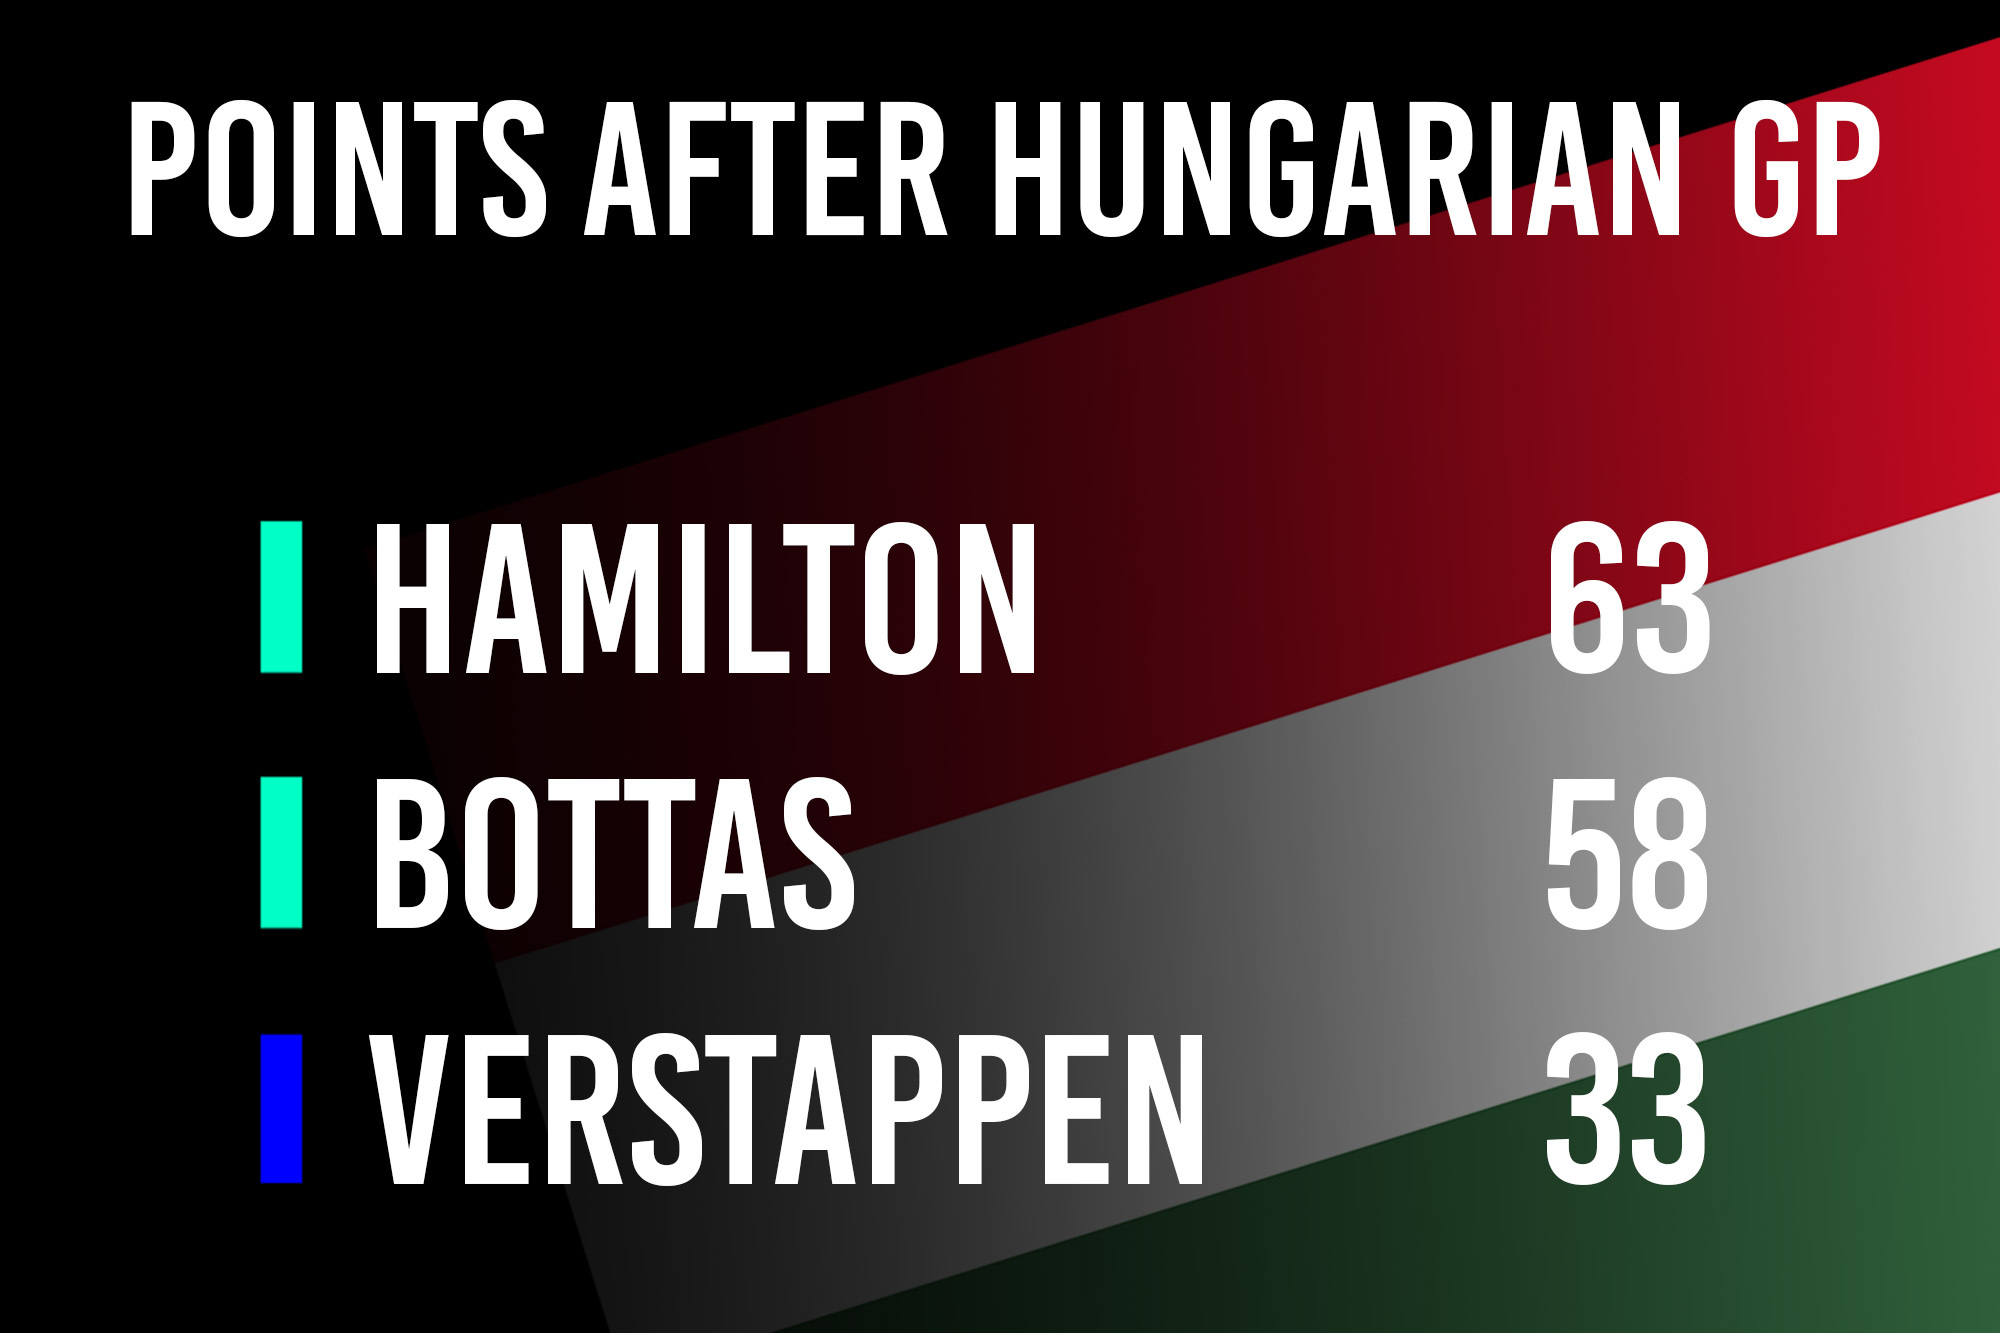 After Hungary